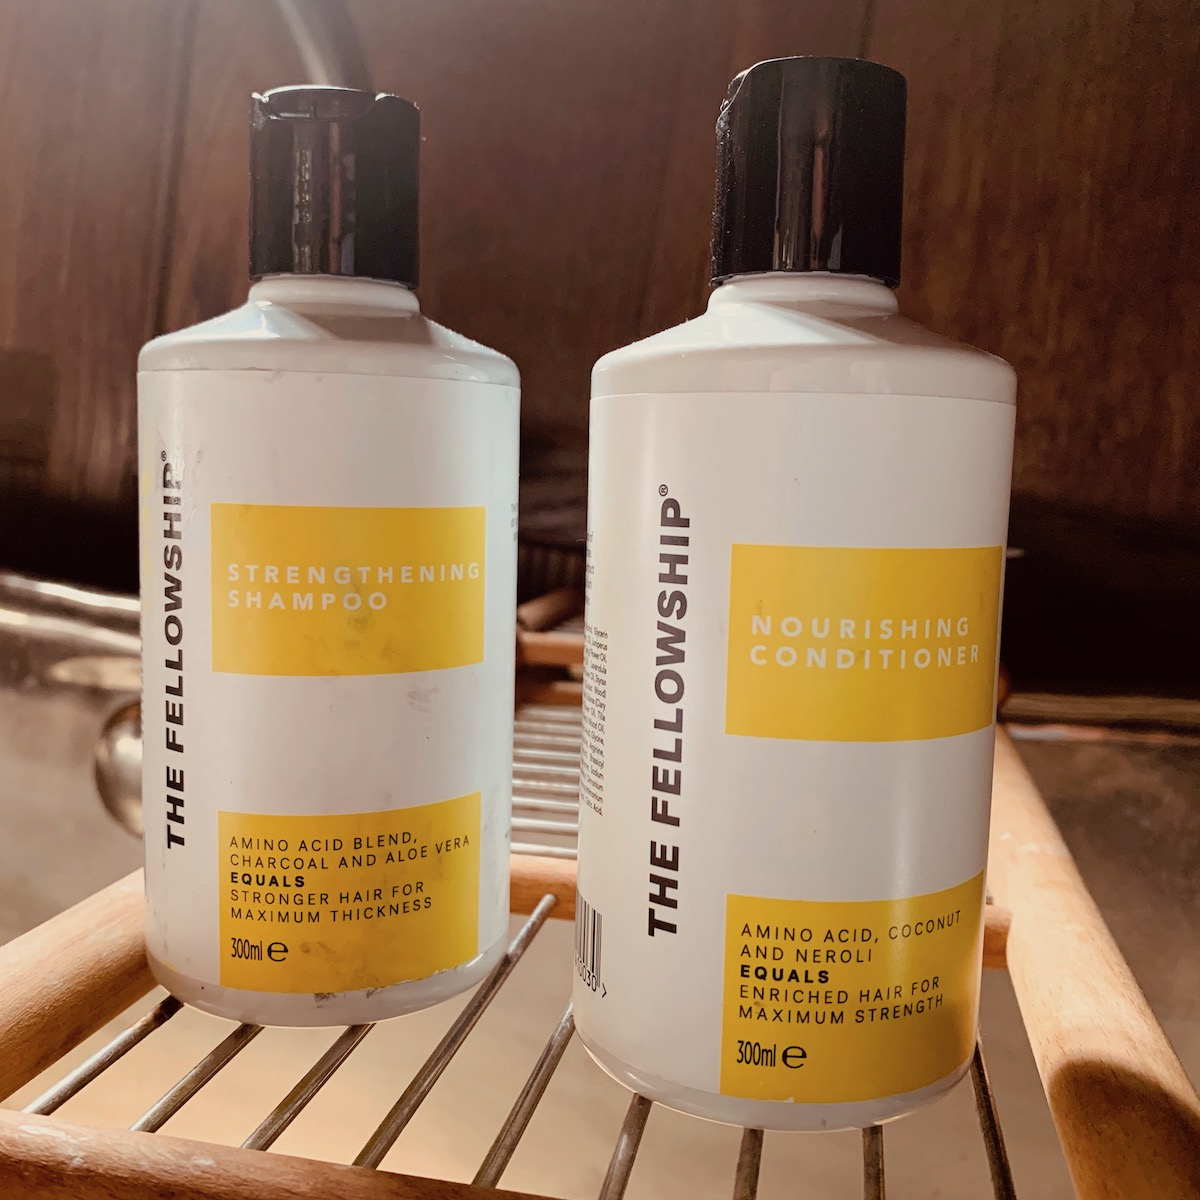 The Fellowship shampoo and conditioner